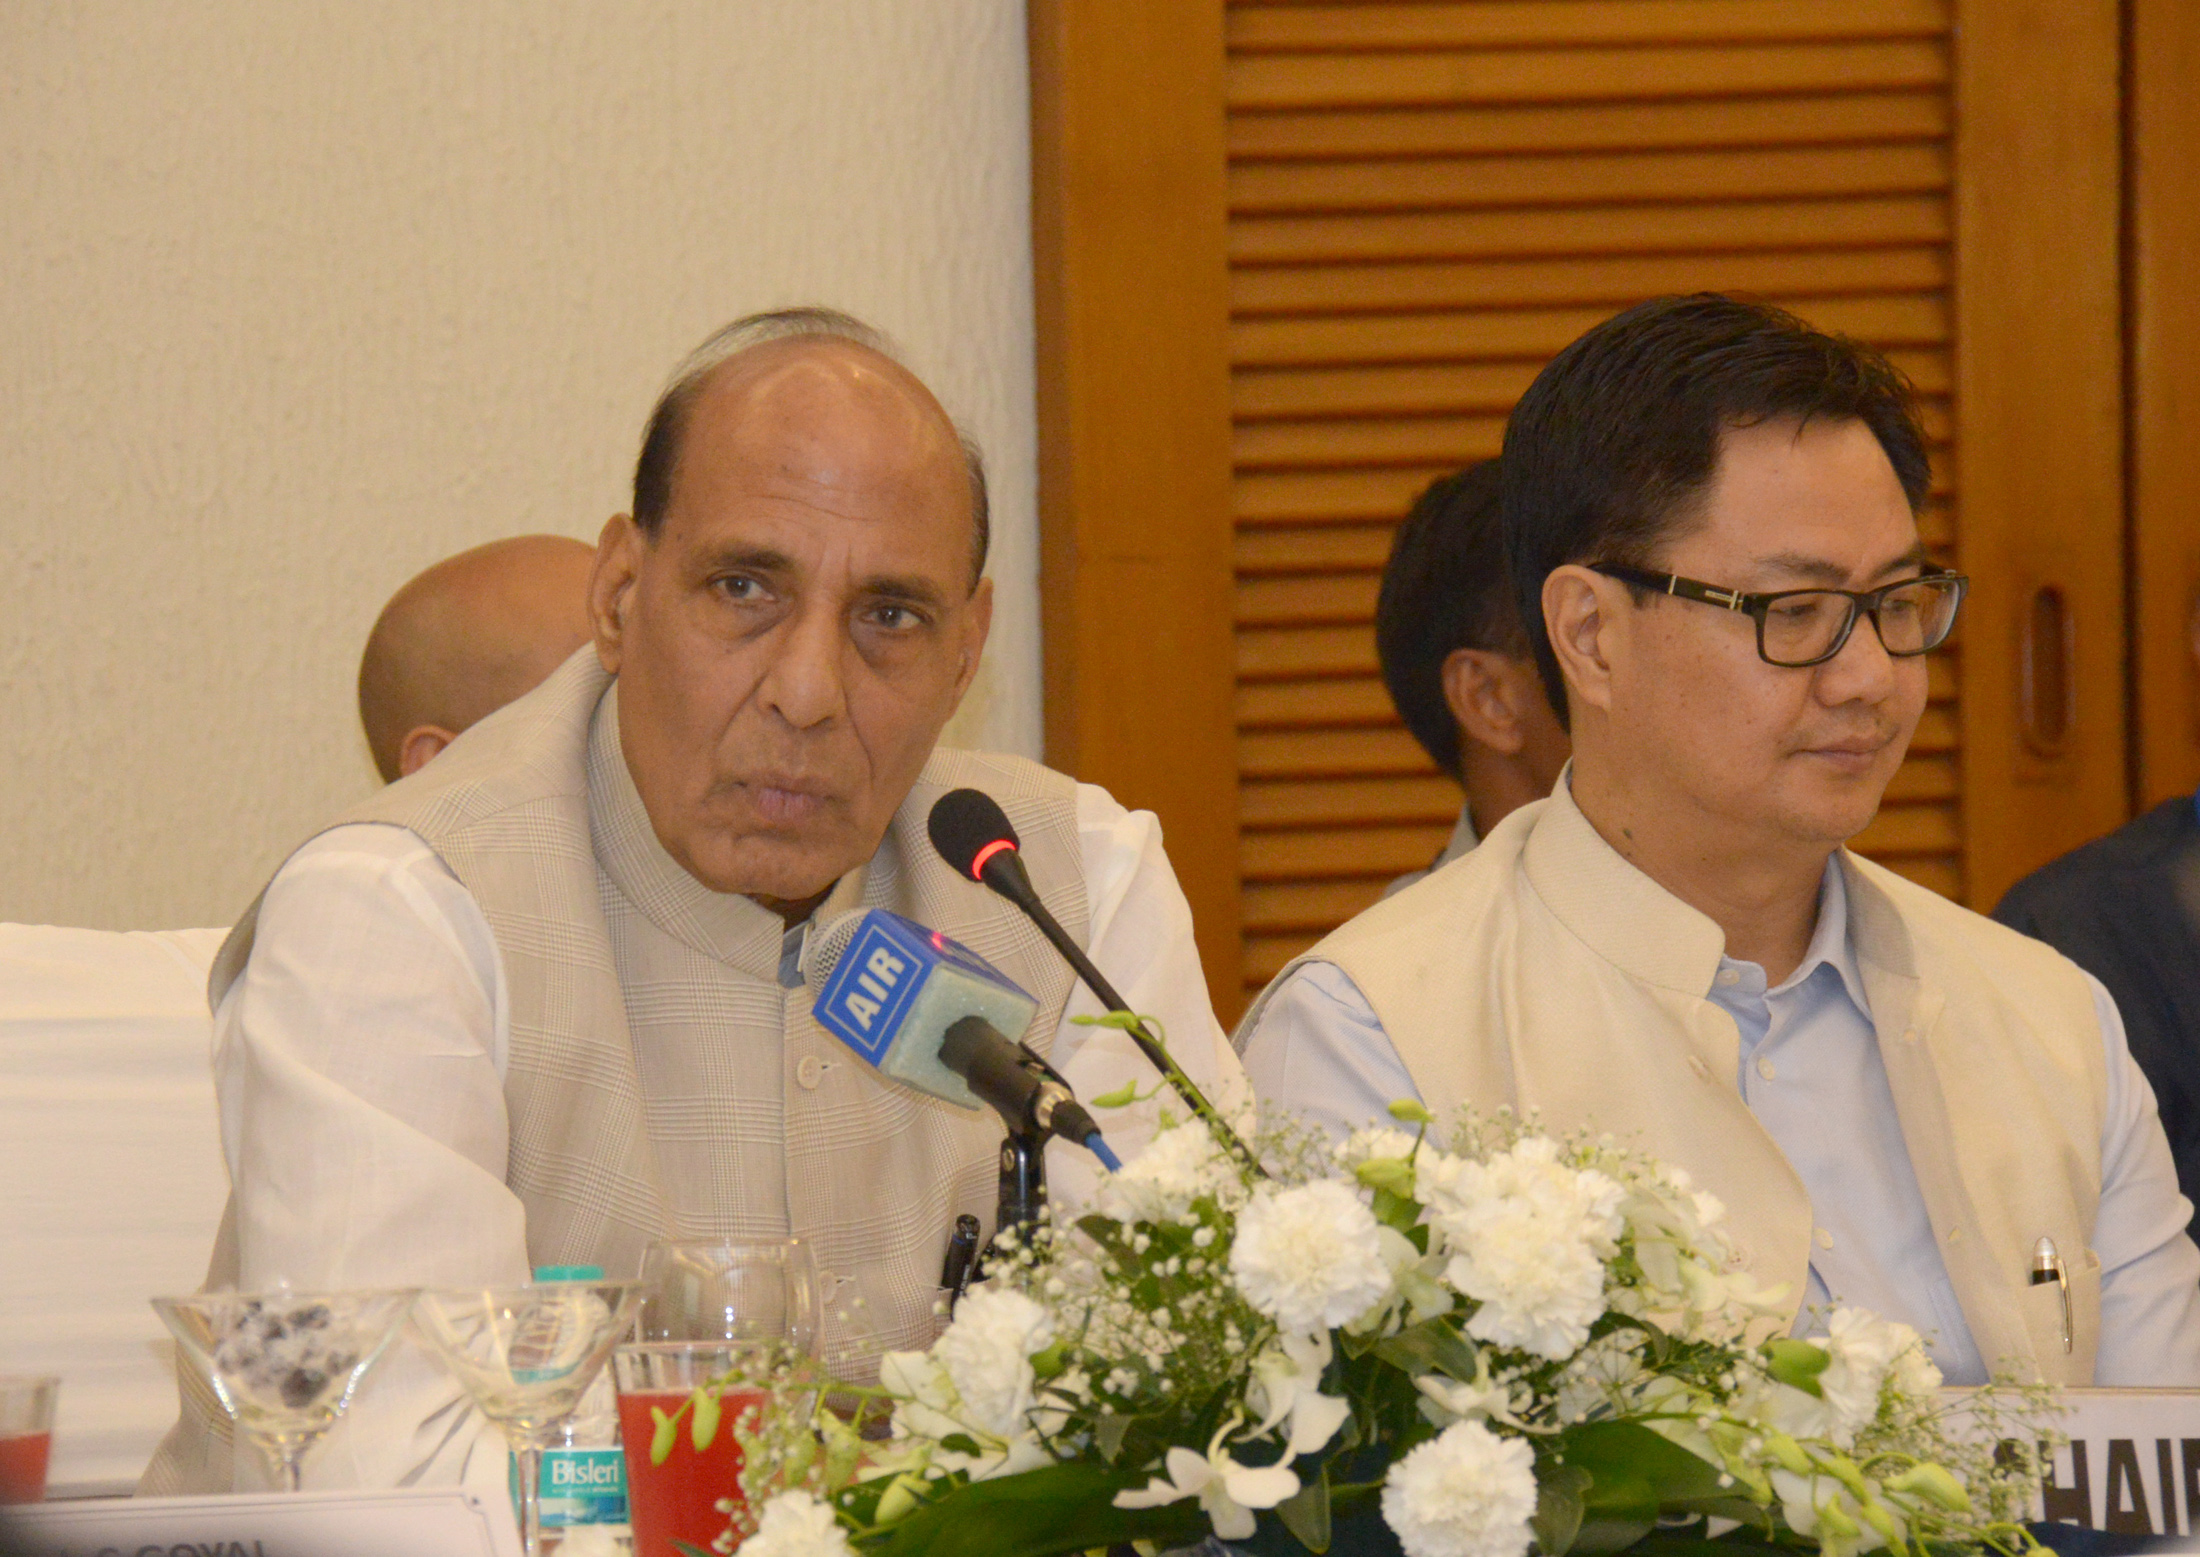 The Union Home Minister, Shri Rajnath Singh addressing the Consultative Committee Meeting of the Ministry of Home Affairs on coastal security, in Panaji, Goa on July 13, 2015.  The Minister of State for Home Affairs, Shri Kiren Rijiju is also seen.